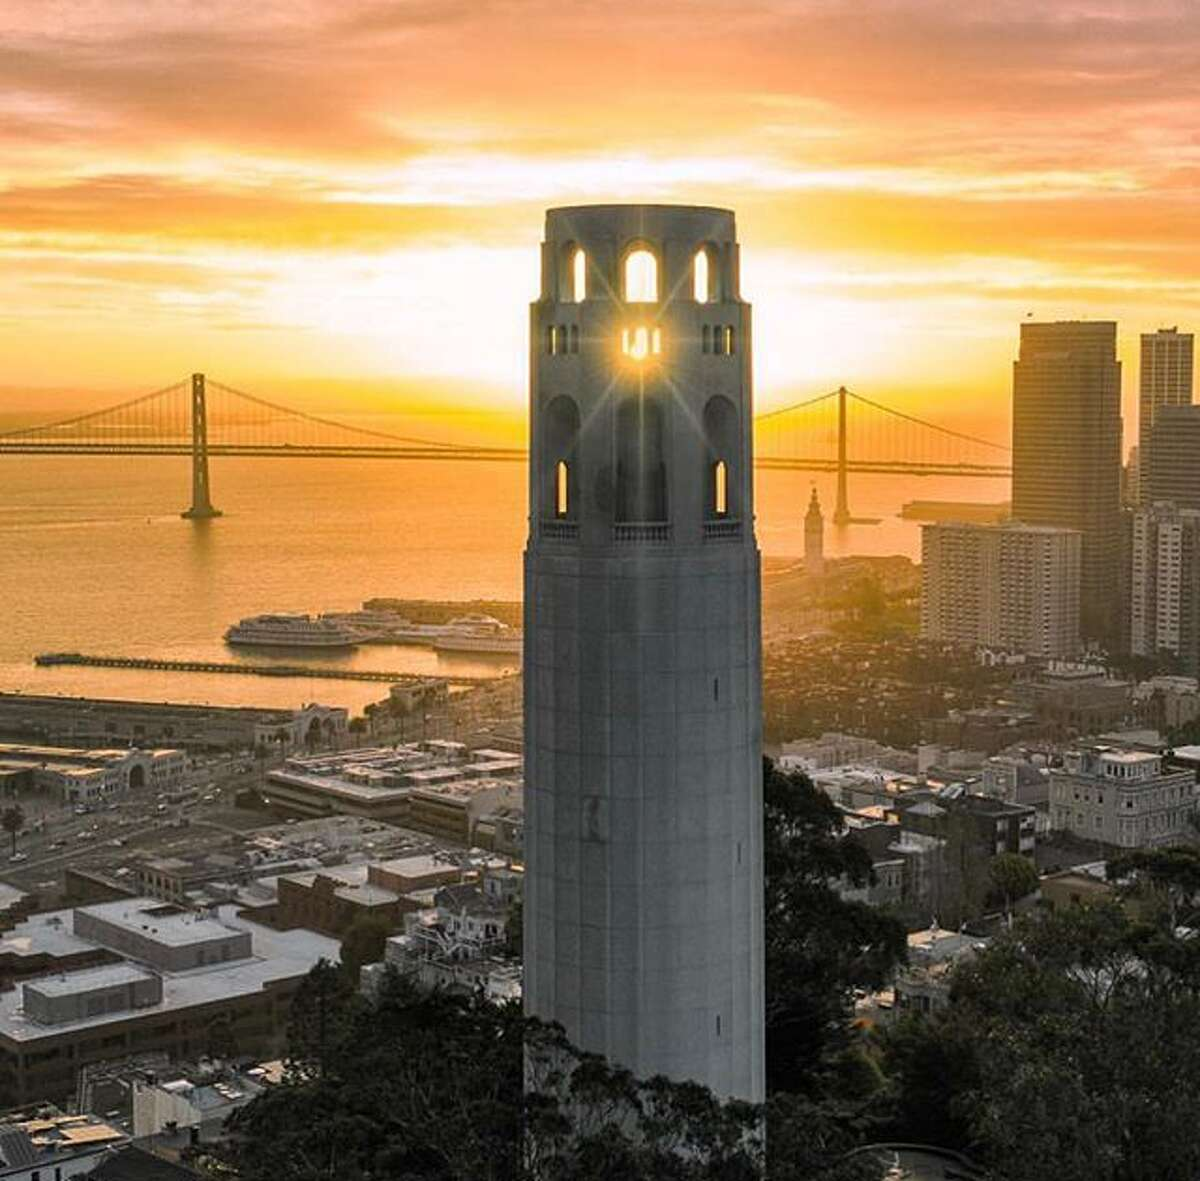 Sunrise at Coit Tower by @fitzsimonsphotography